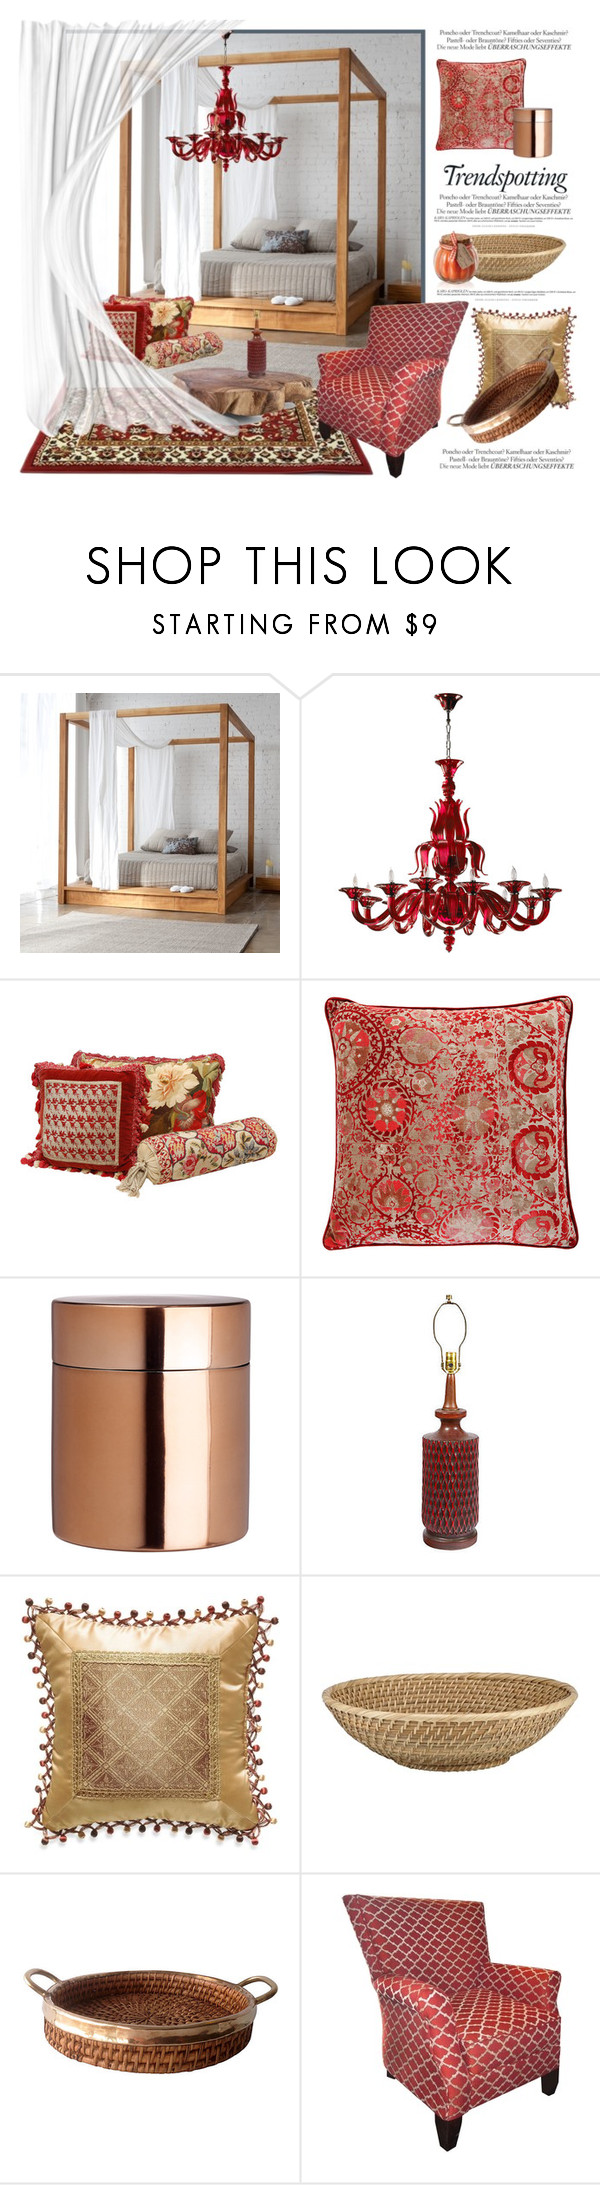 canopy beds exotic note by vinograd24 liked on polyvore featuring interior